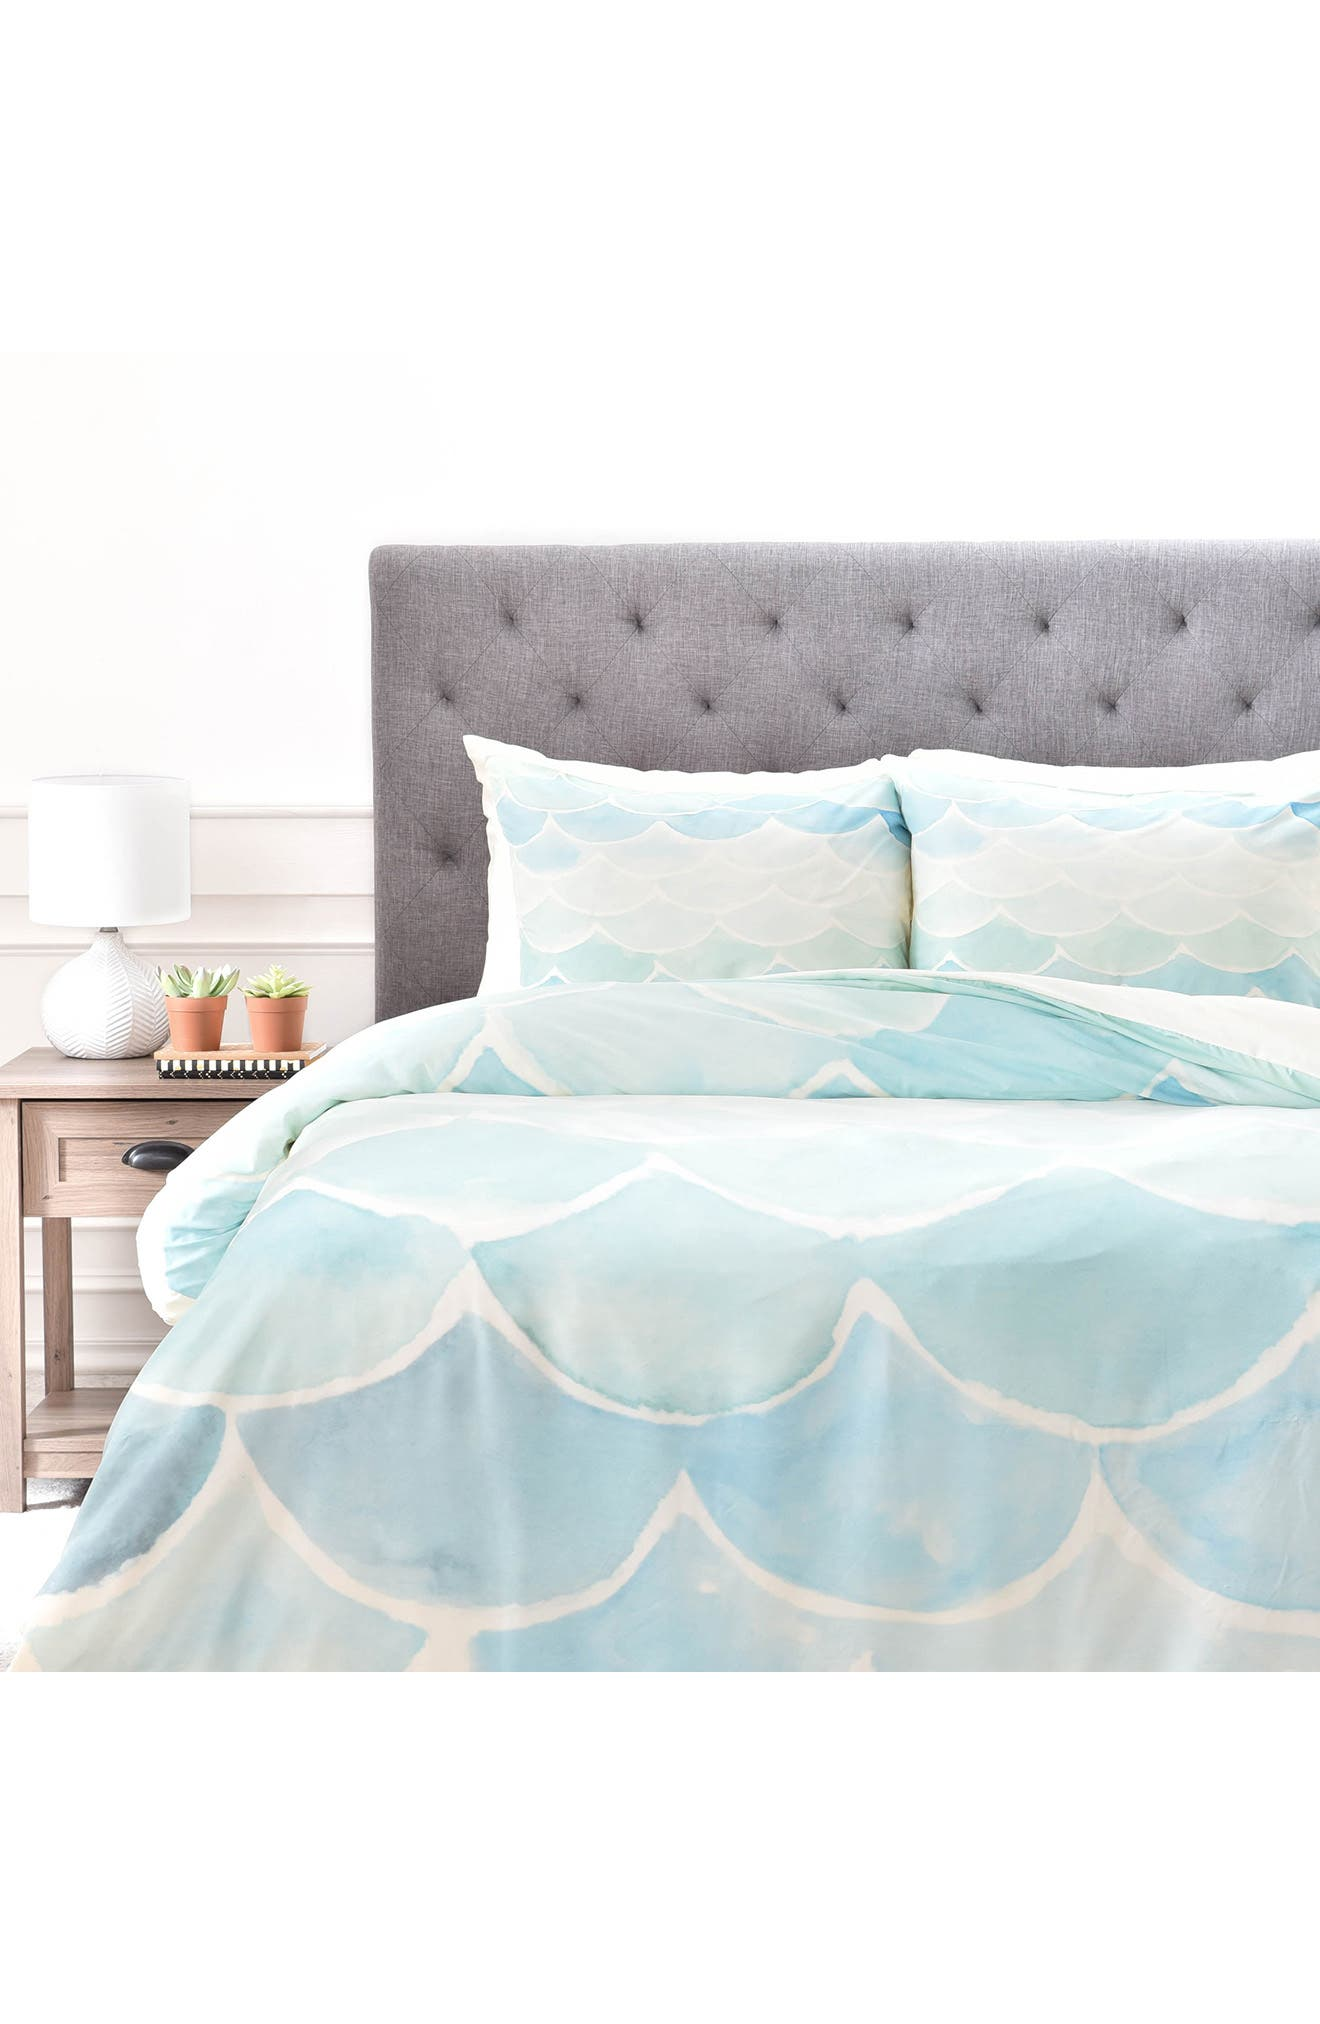 Mermaid Scales Duvet Cover & Sham Set,                         Main,                         color,